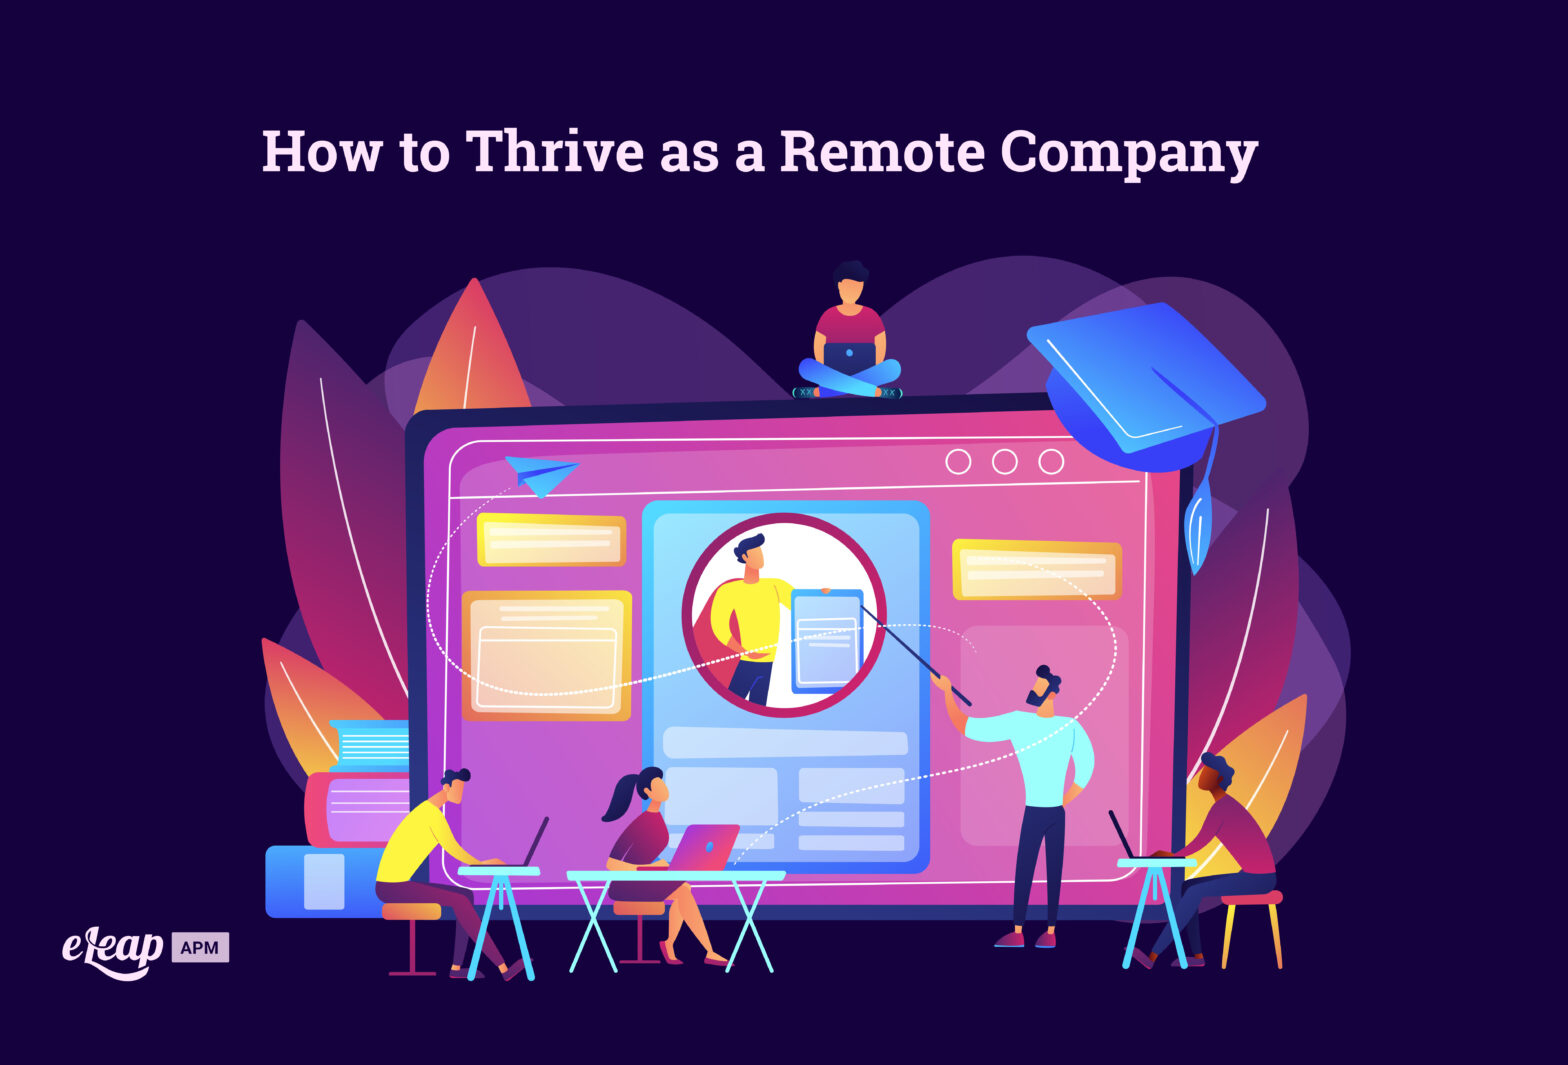 How to Thrive as a Remote Company